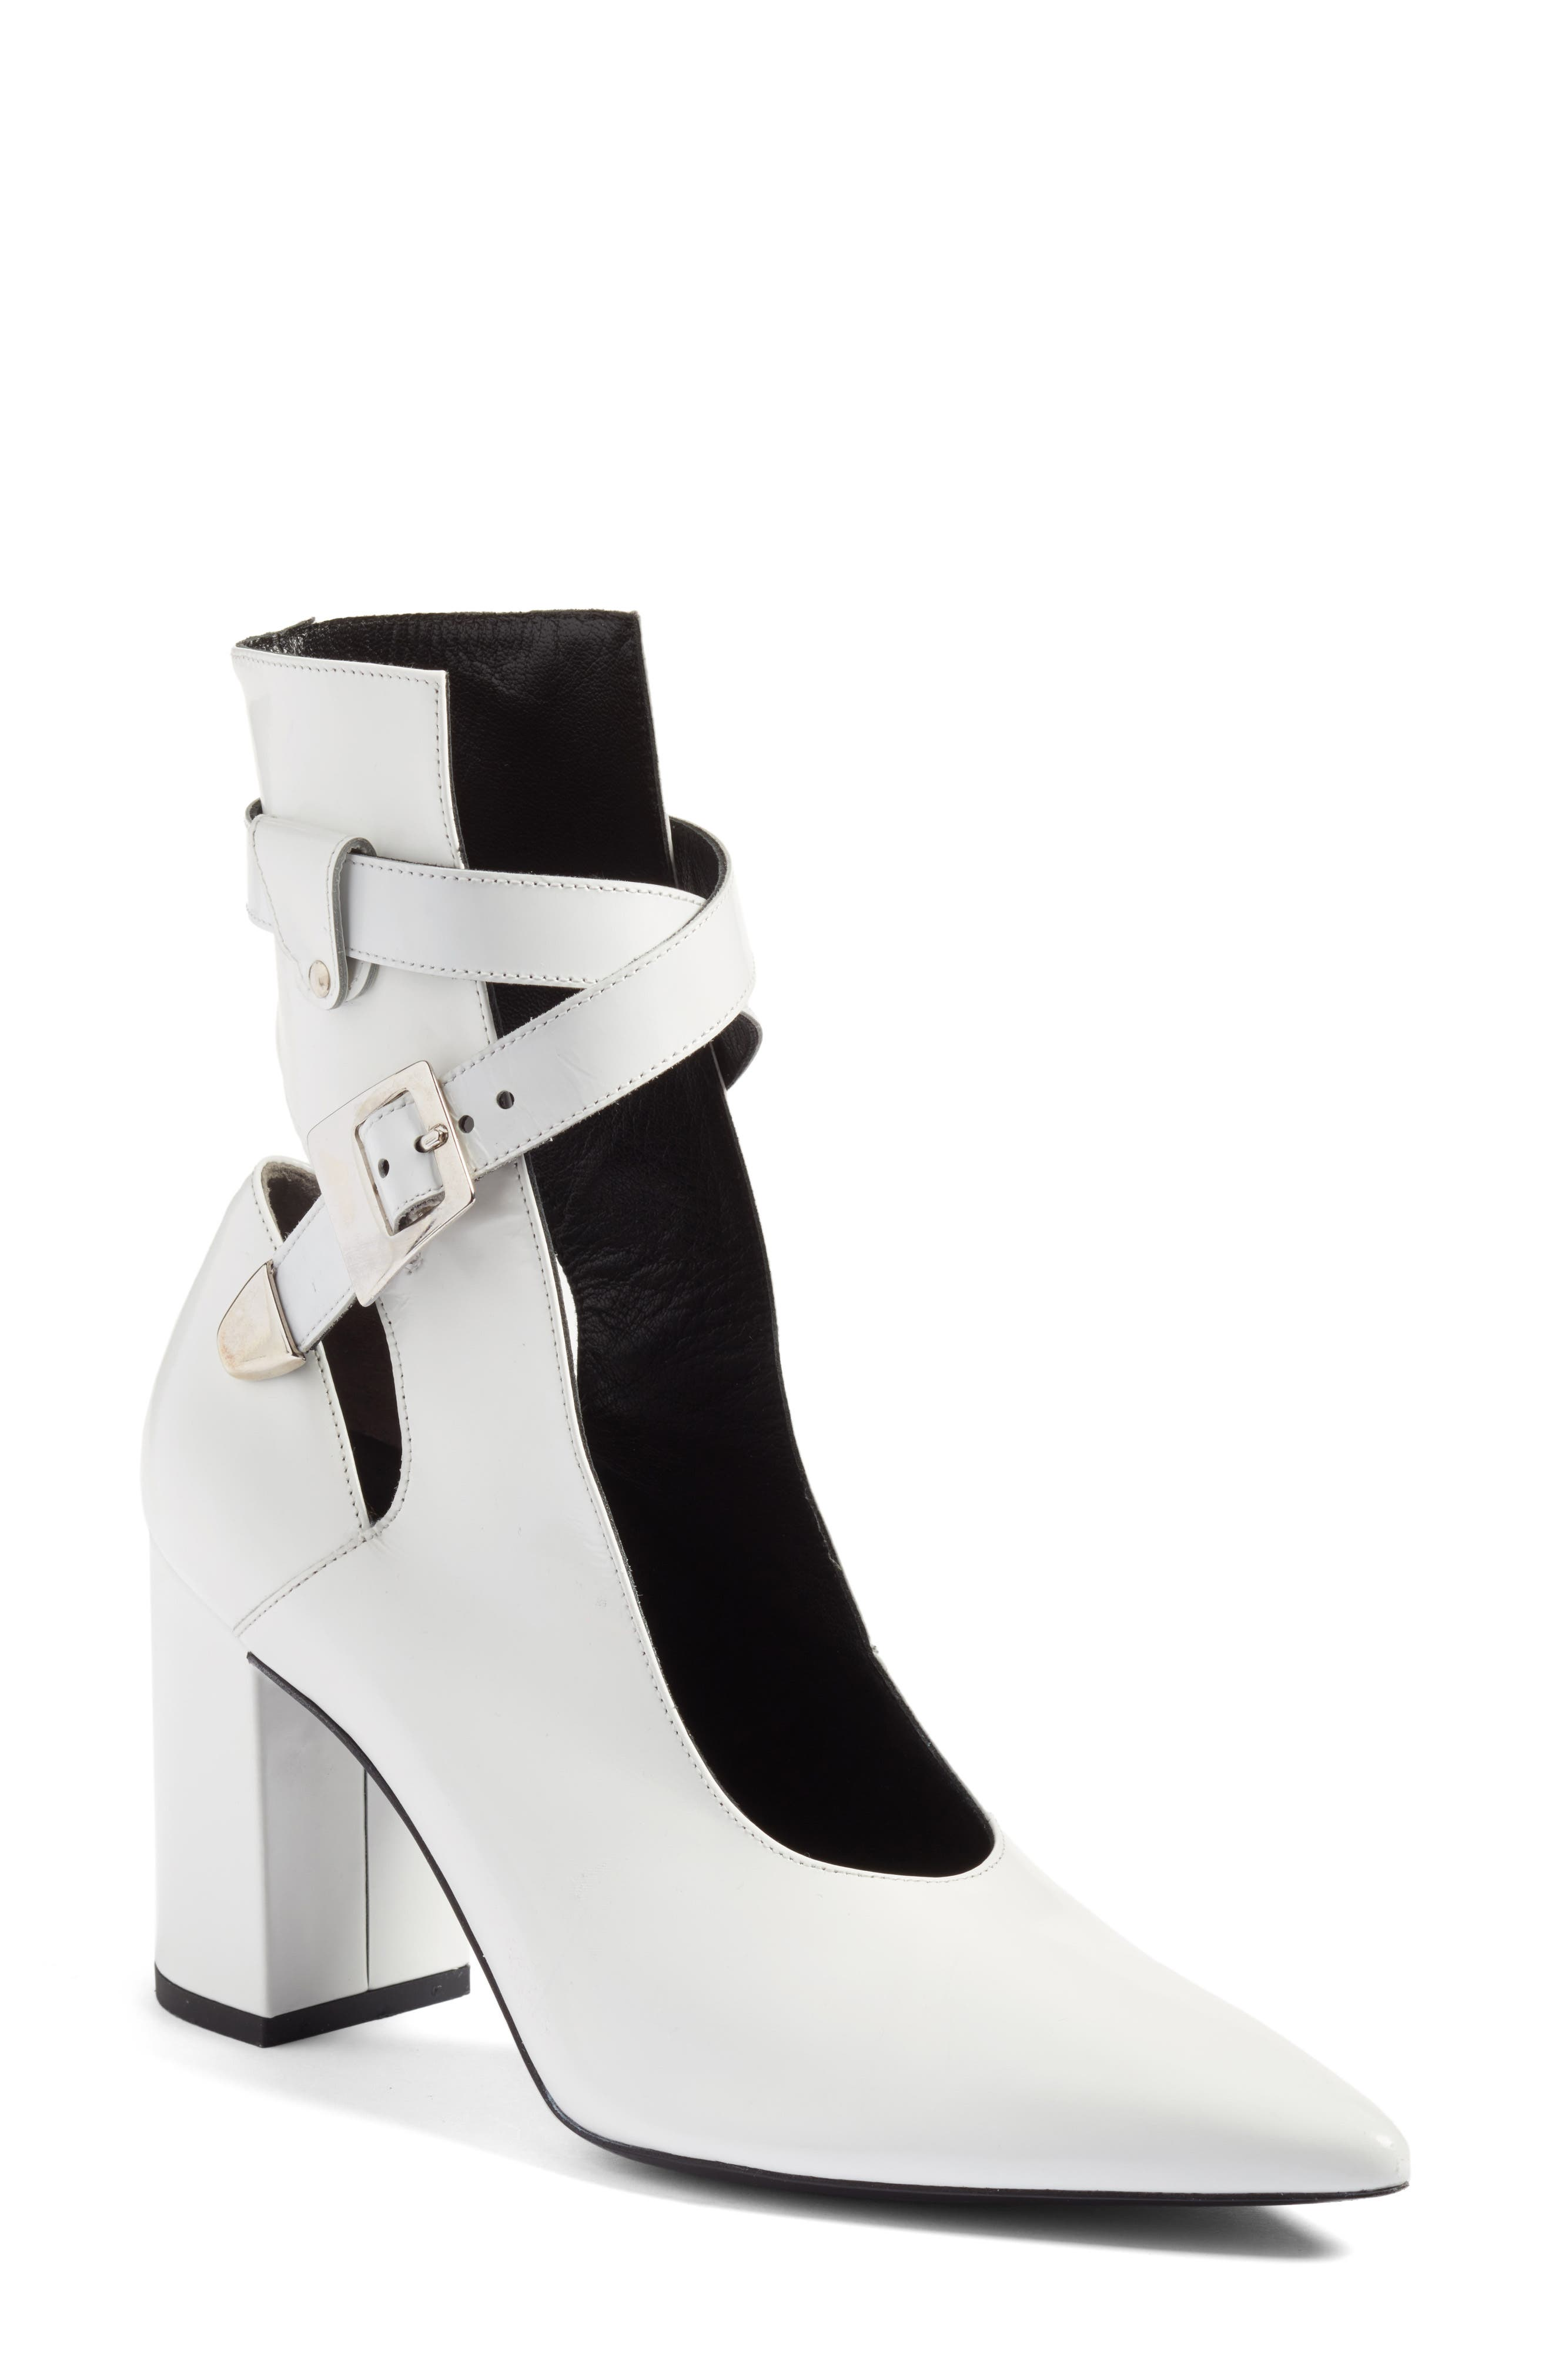 Main Image - Robert Clergerie x Self-Portrait Kult Pointy Toe Bootie (Women)